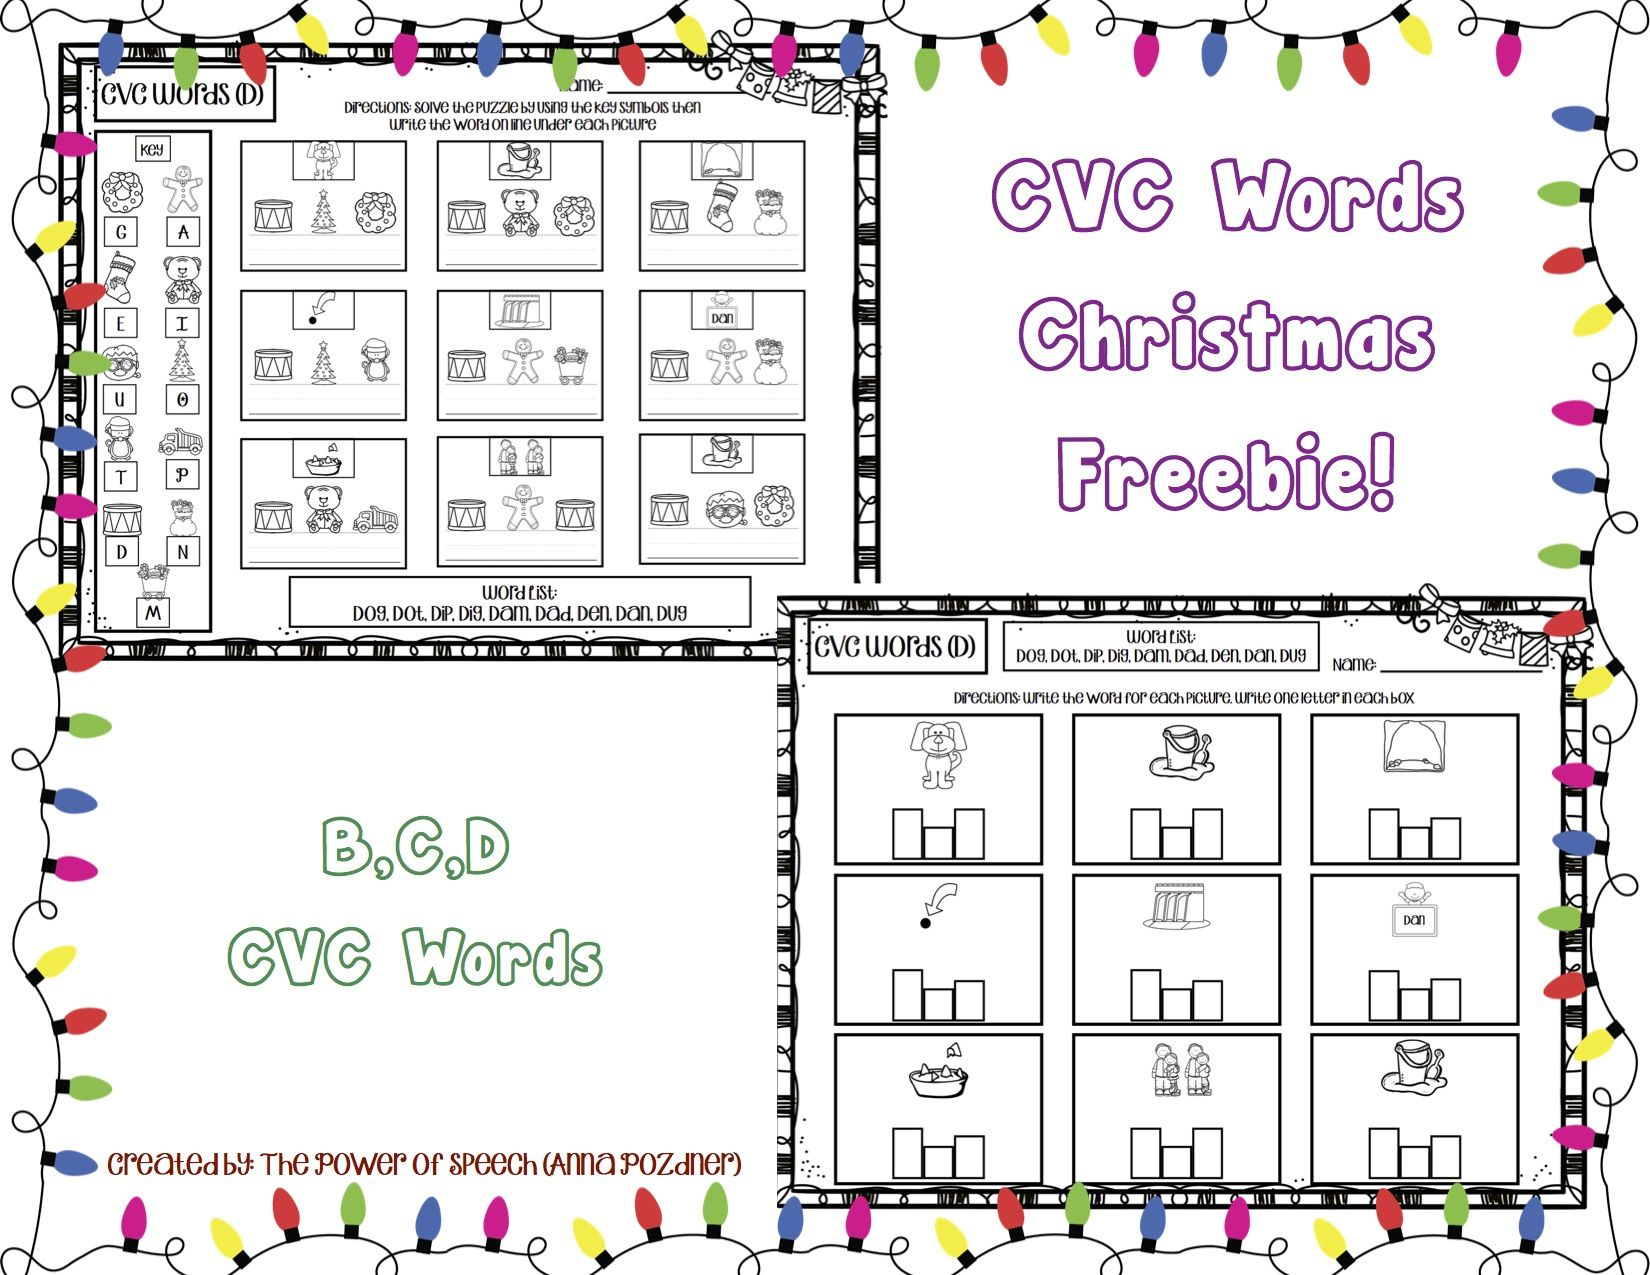 Cvc Words Christmas Freebie